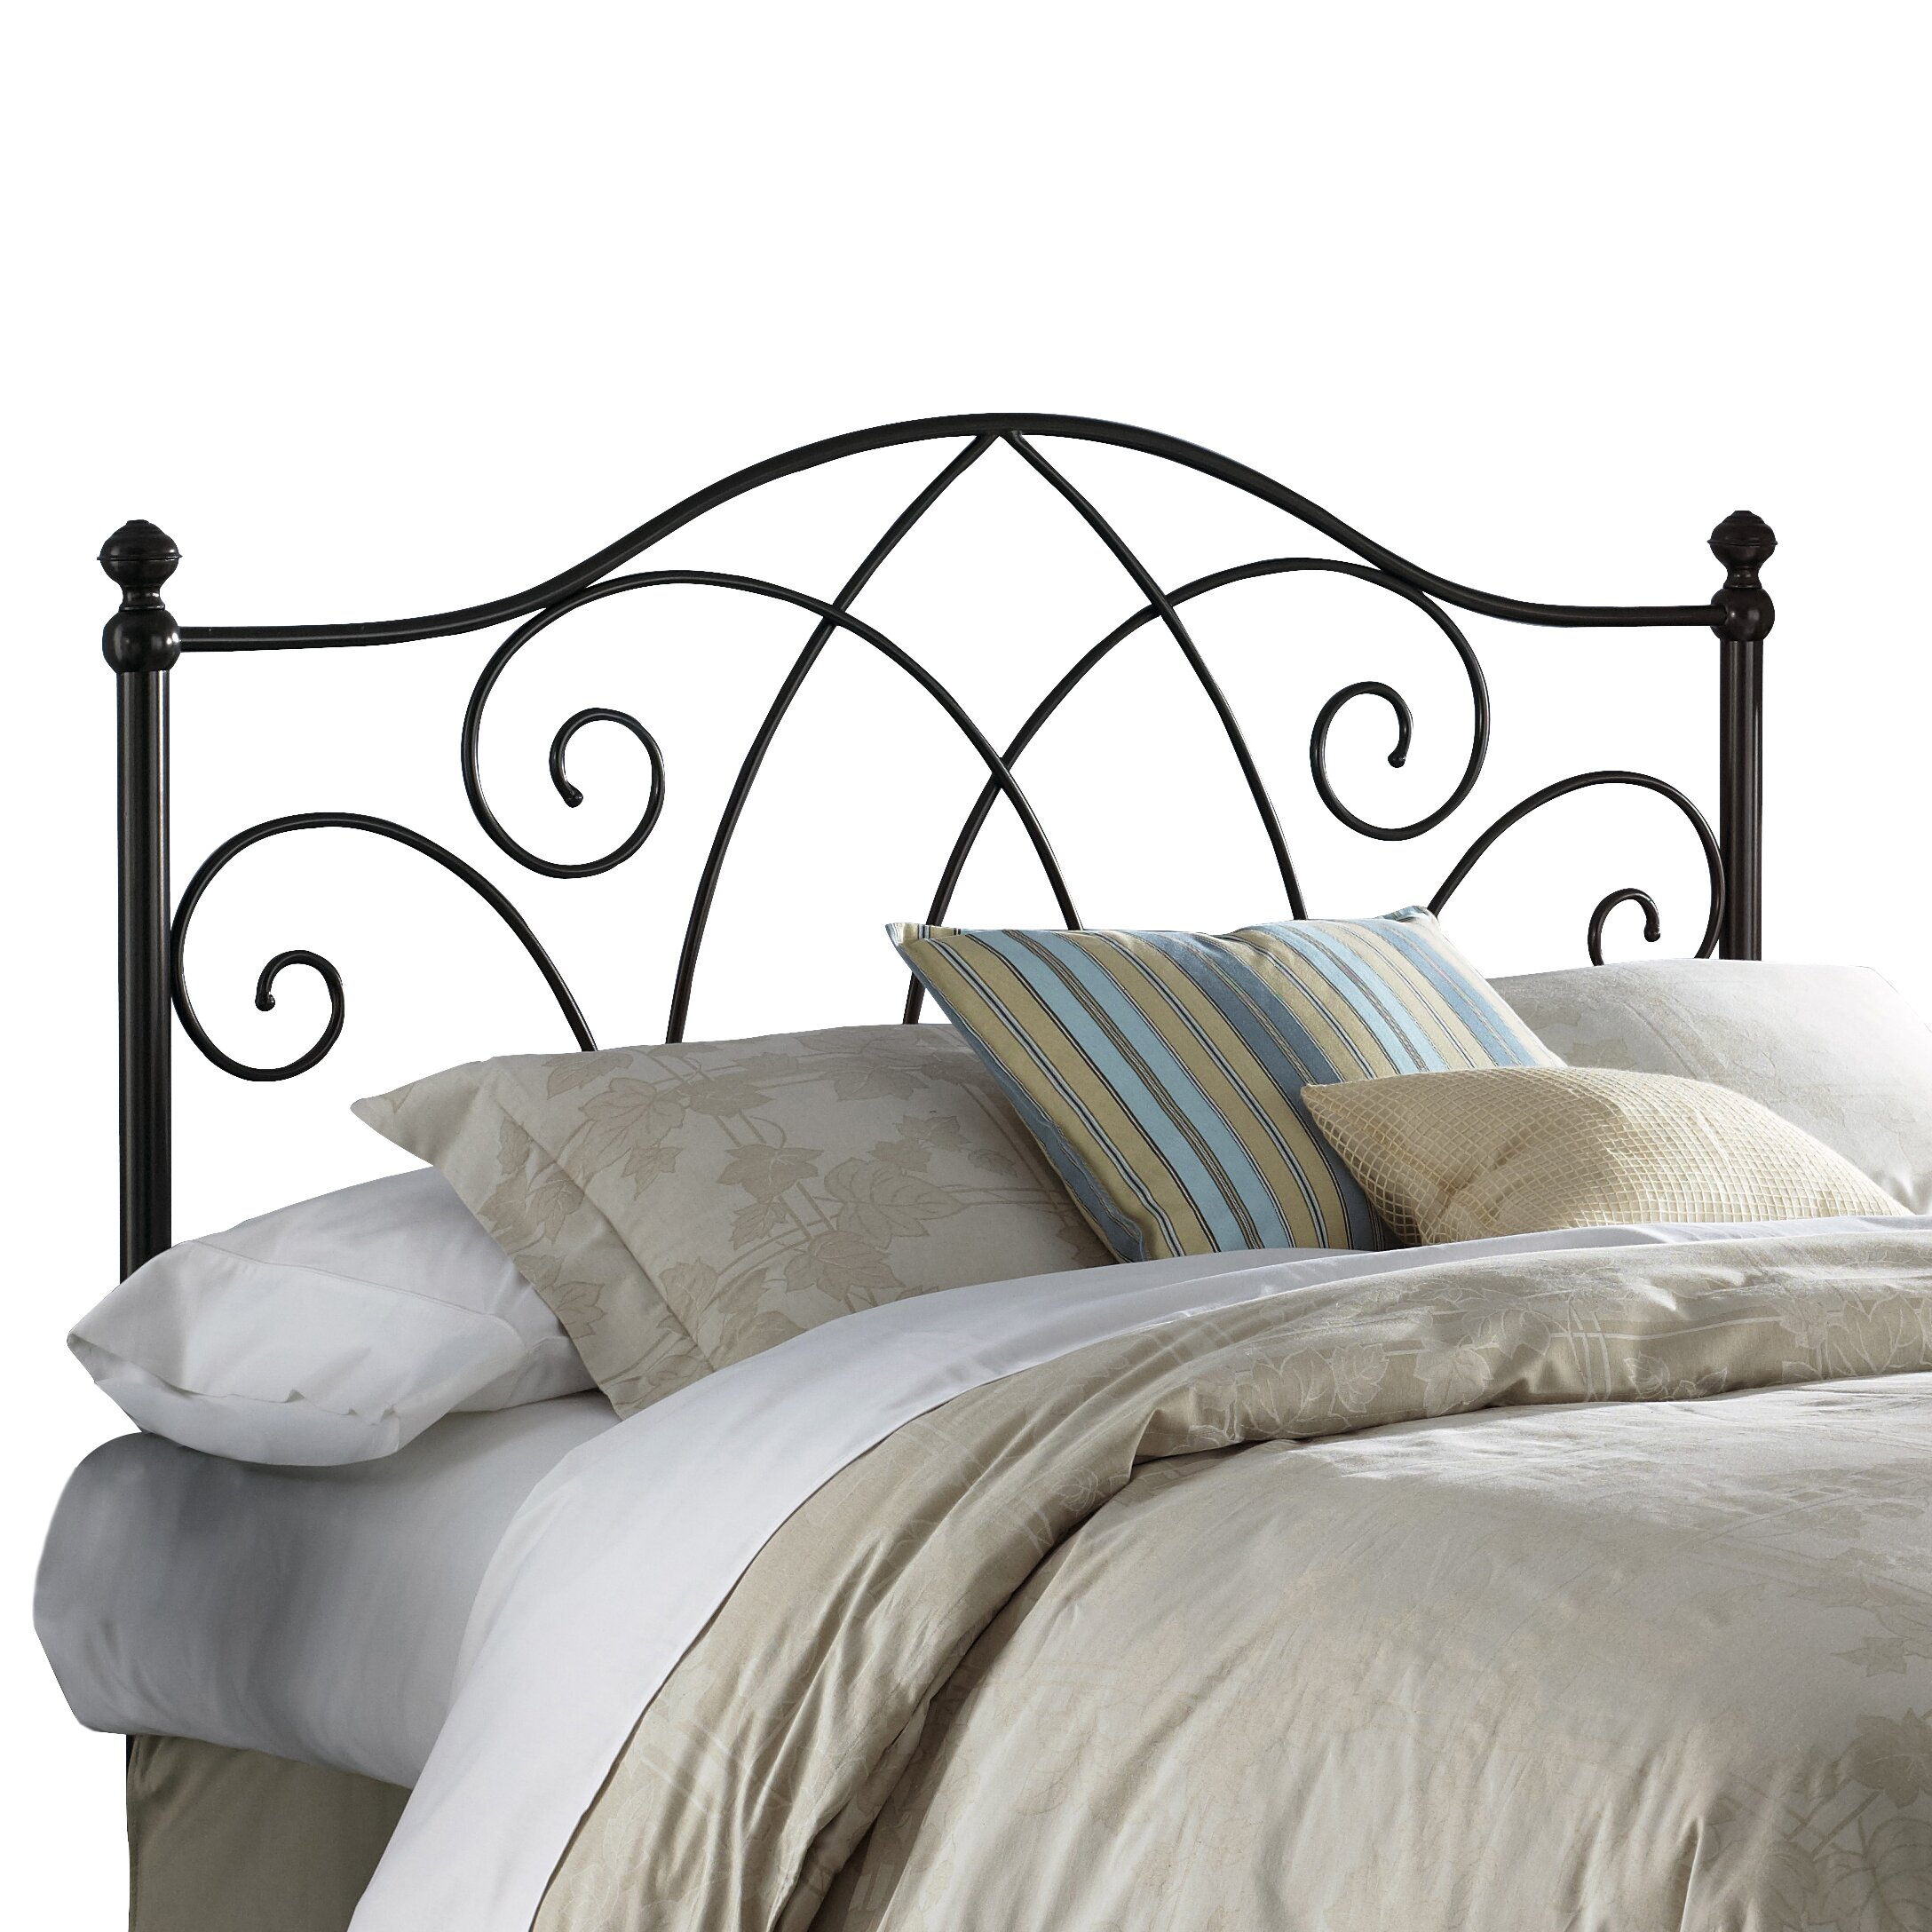 Metal headboard bed frame - Fashion Bed Group Deland Open Frame Headboard